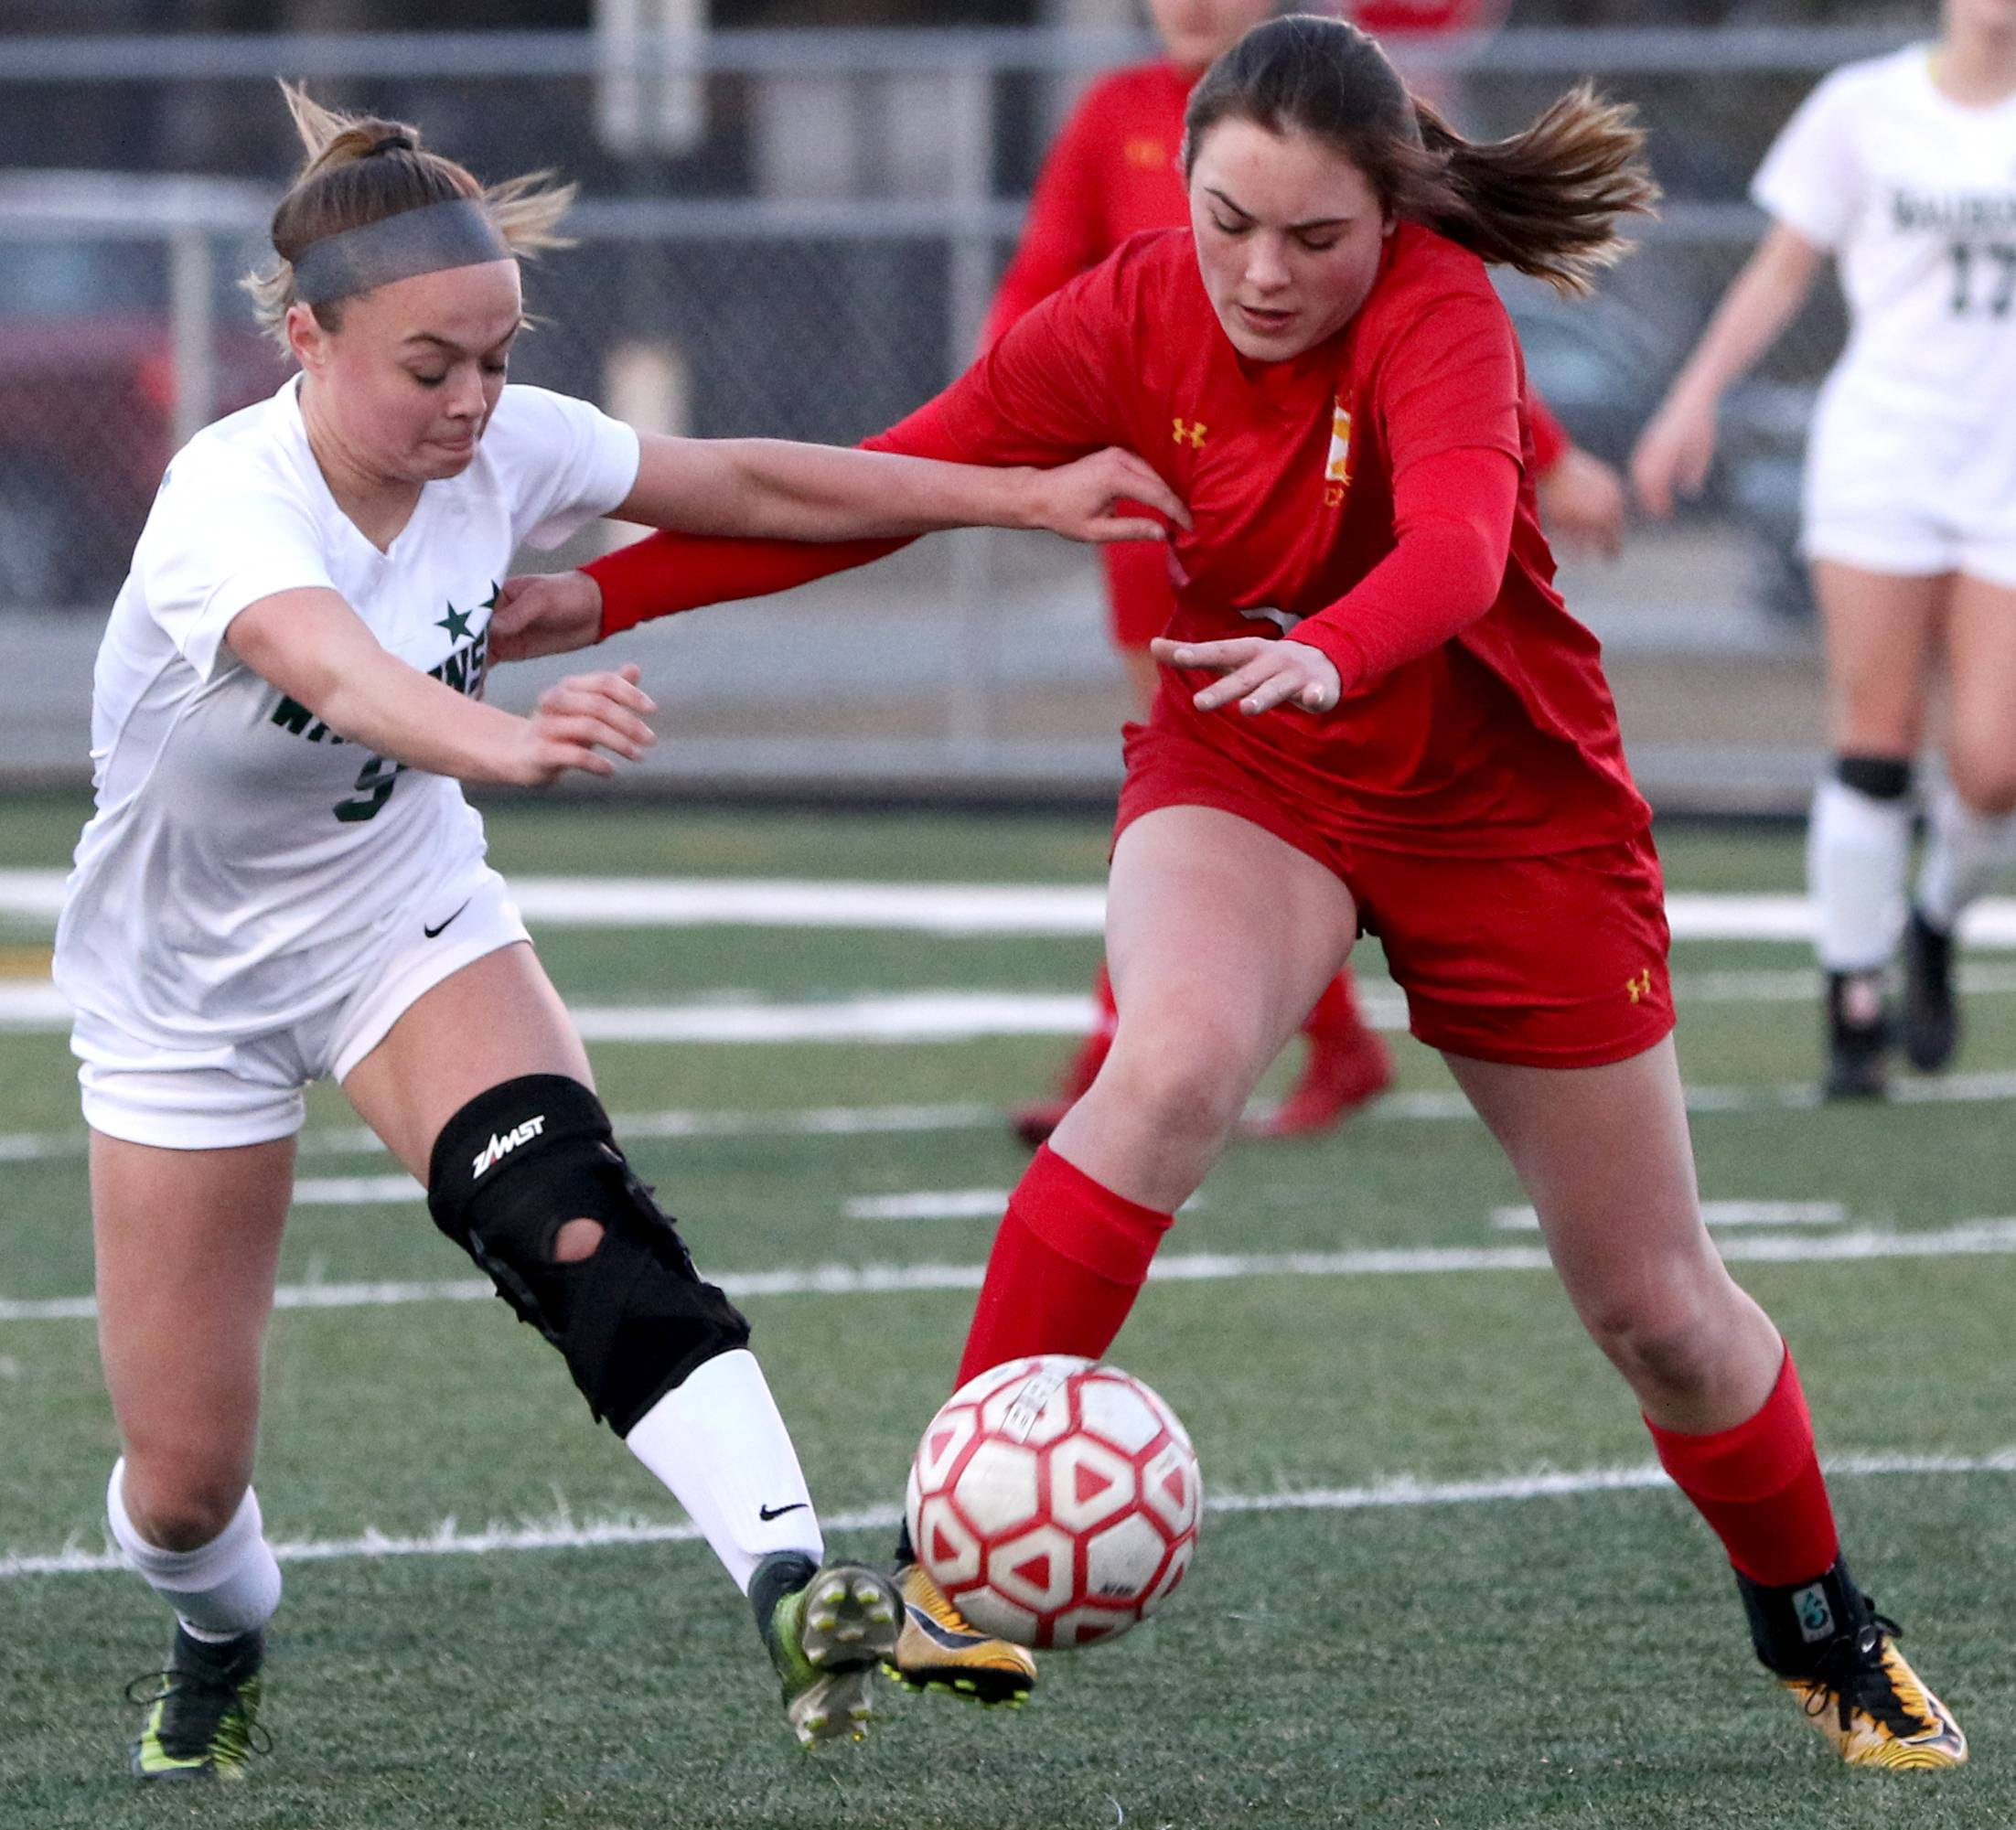 Batavia's Ashley Whelpley, right, and Waubonsie Valley's Roxy Zieba race to the ball at Batavia's Bulldog Stadium Monday.